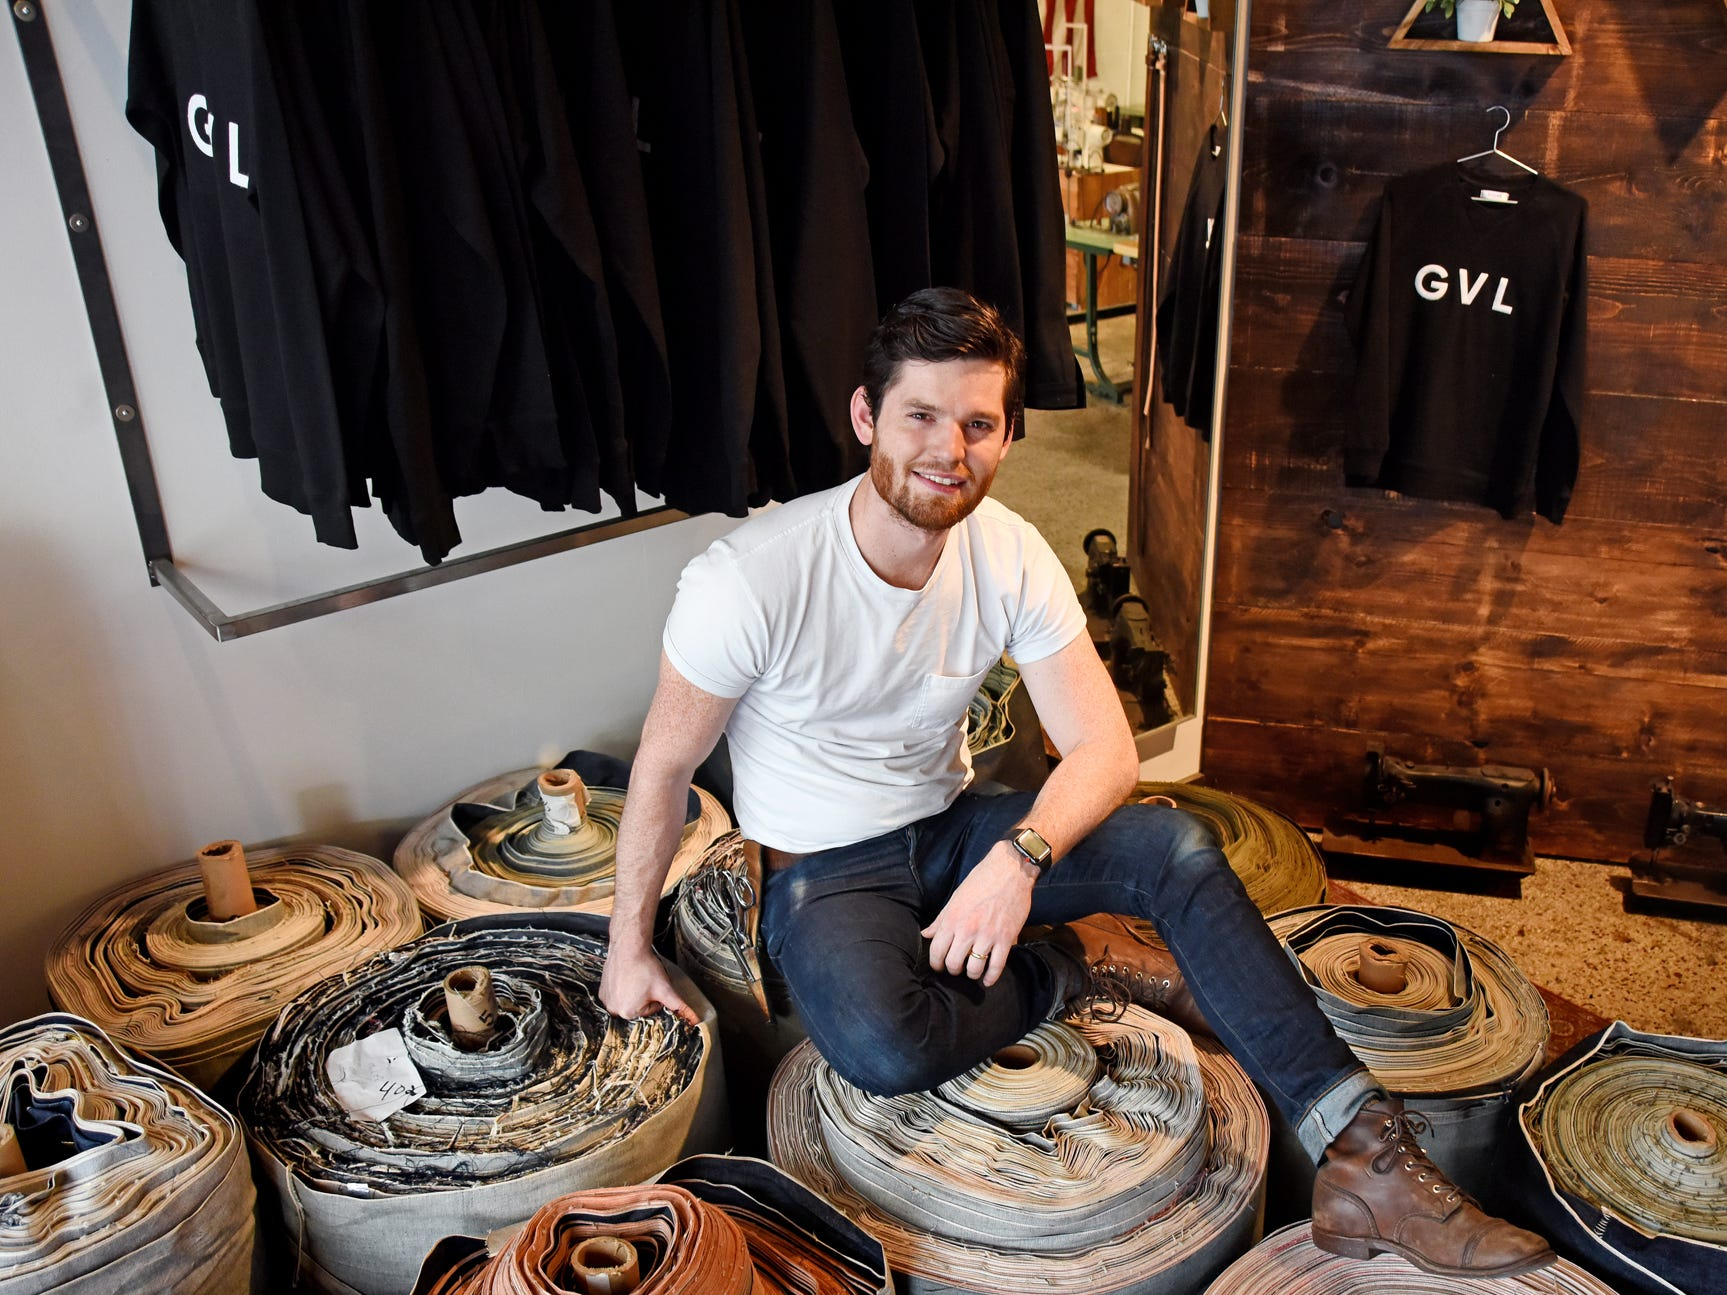 Bill Mitchell, owner of Billiam Jeans in Greenville, sits on rolls of denim in his store.